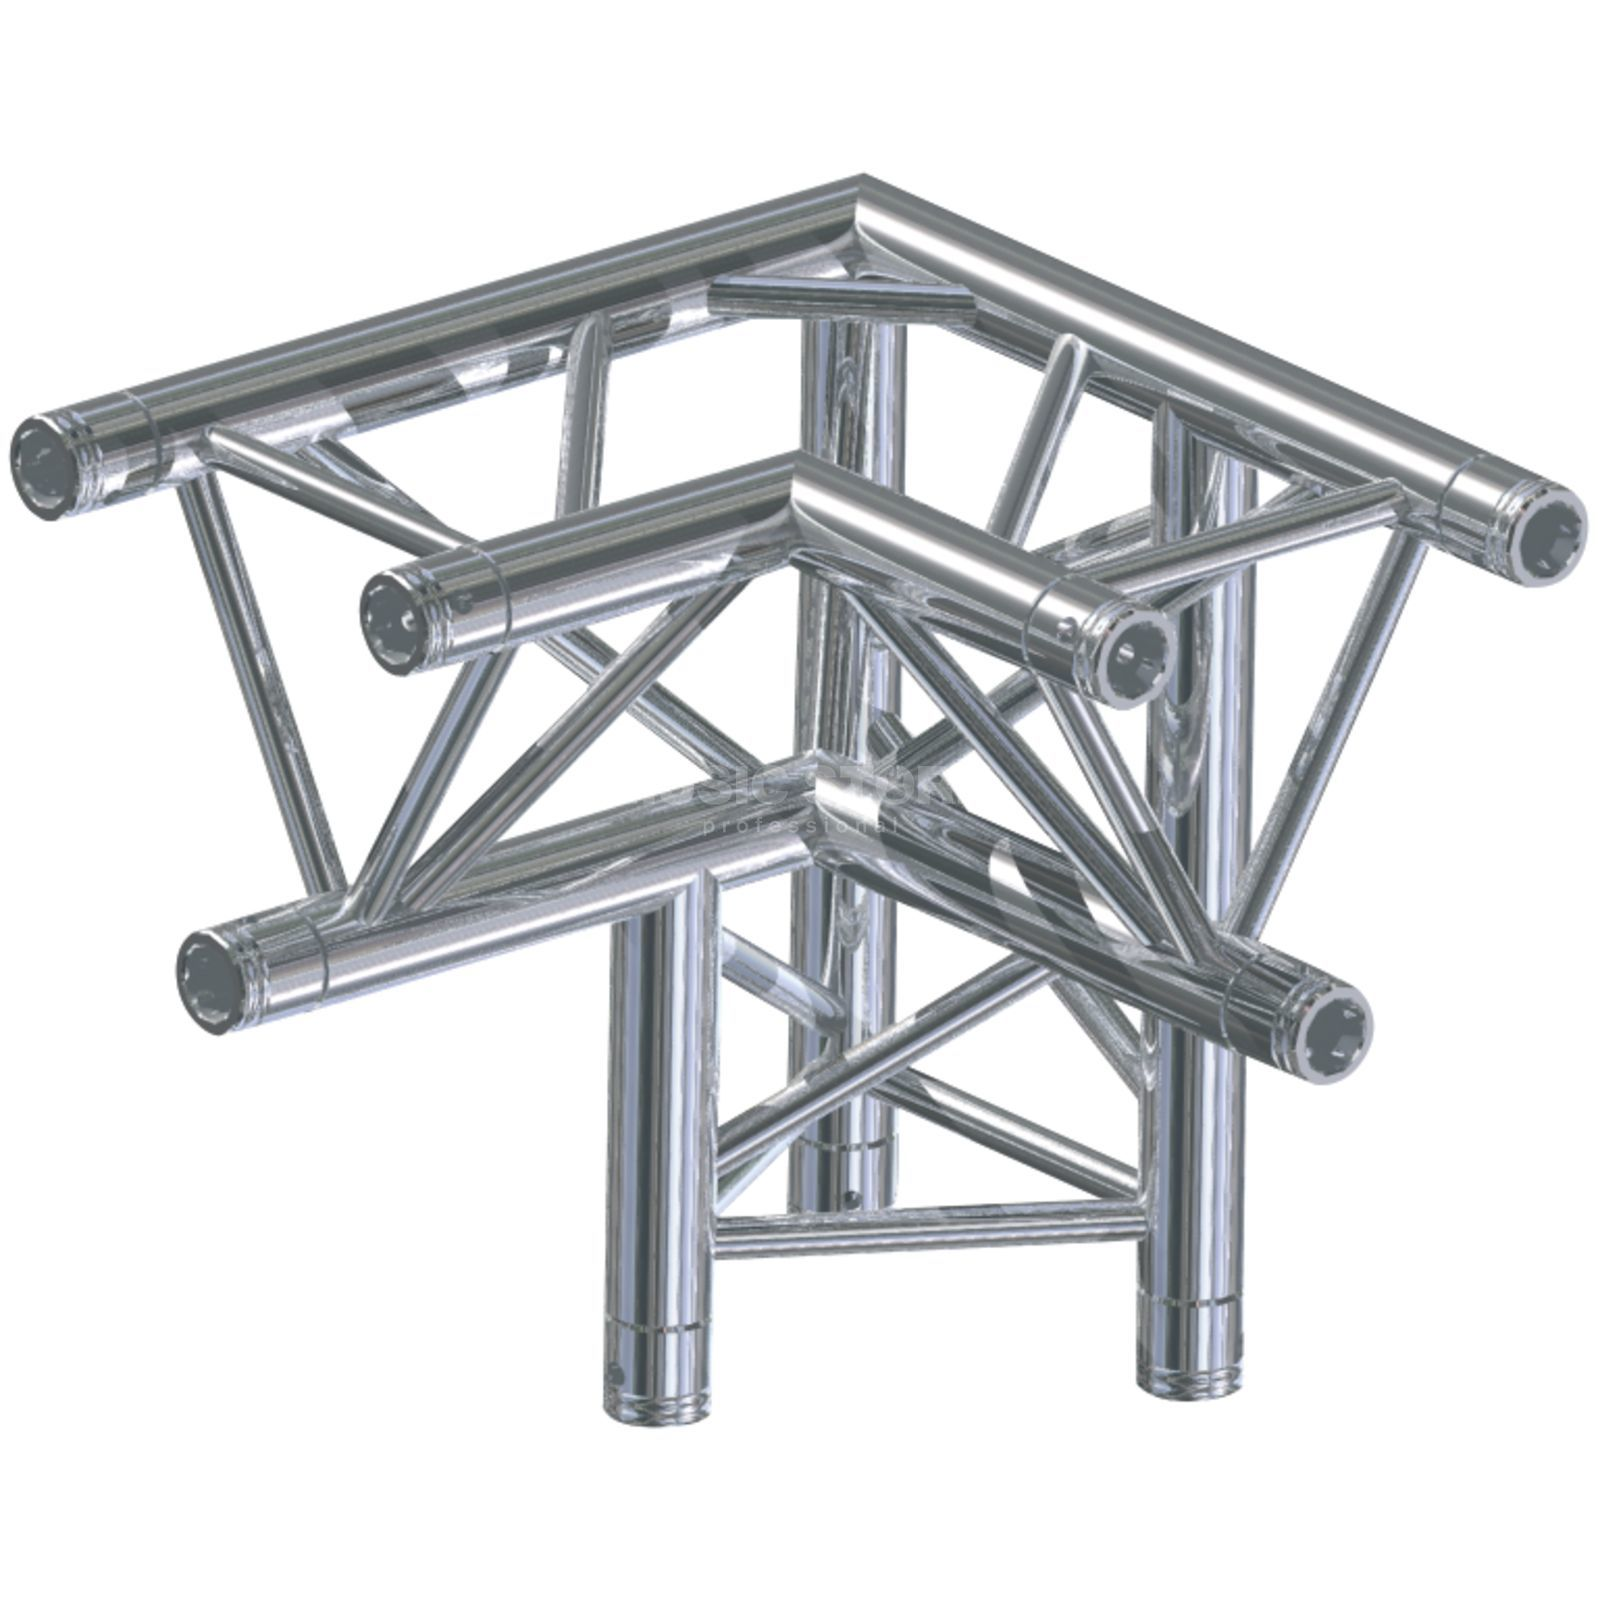 Global Truss F33, LD90 Ecke, C33 3-Punkt, 3-Weg links Produktbild